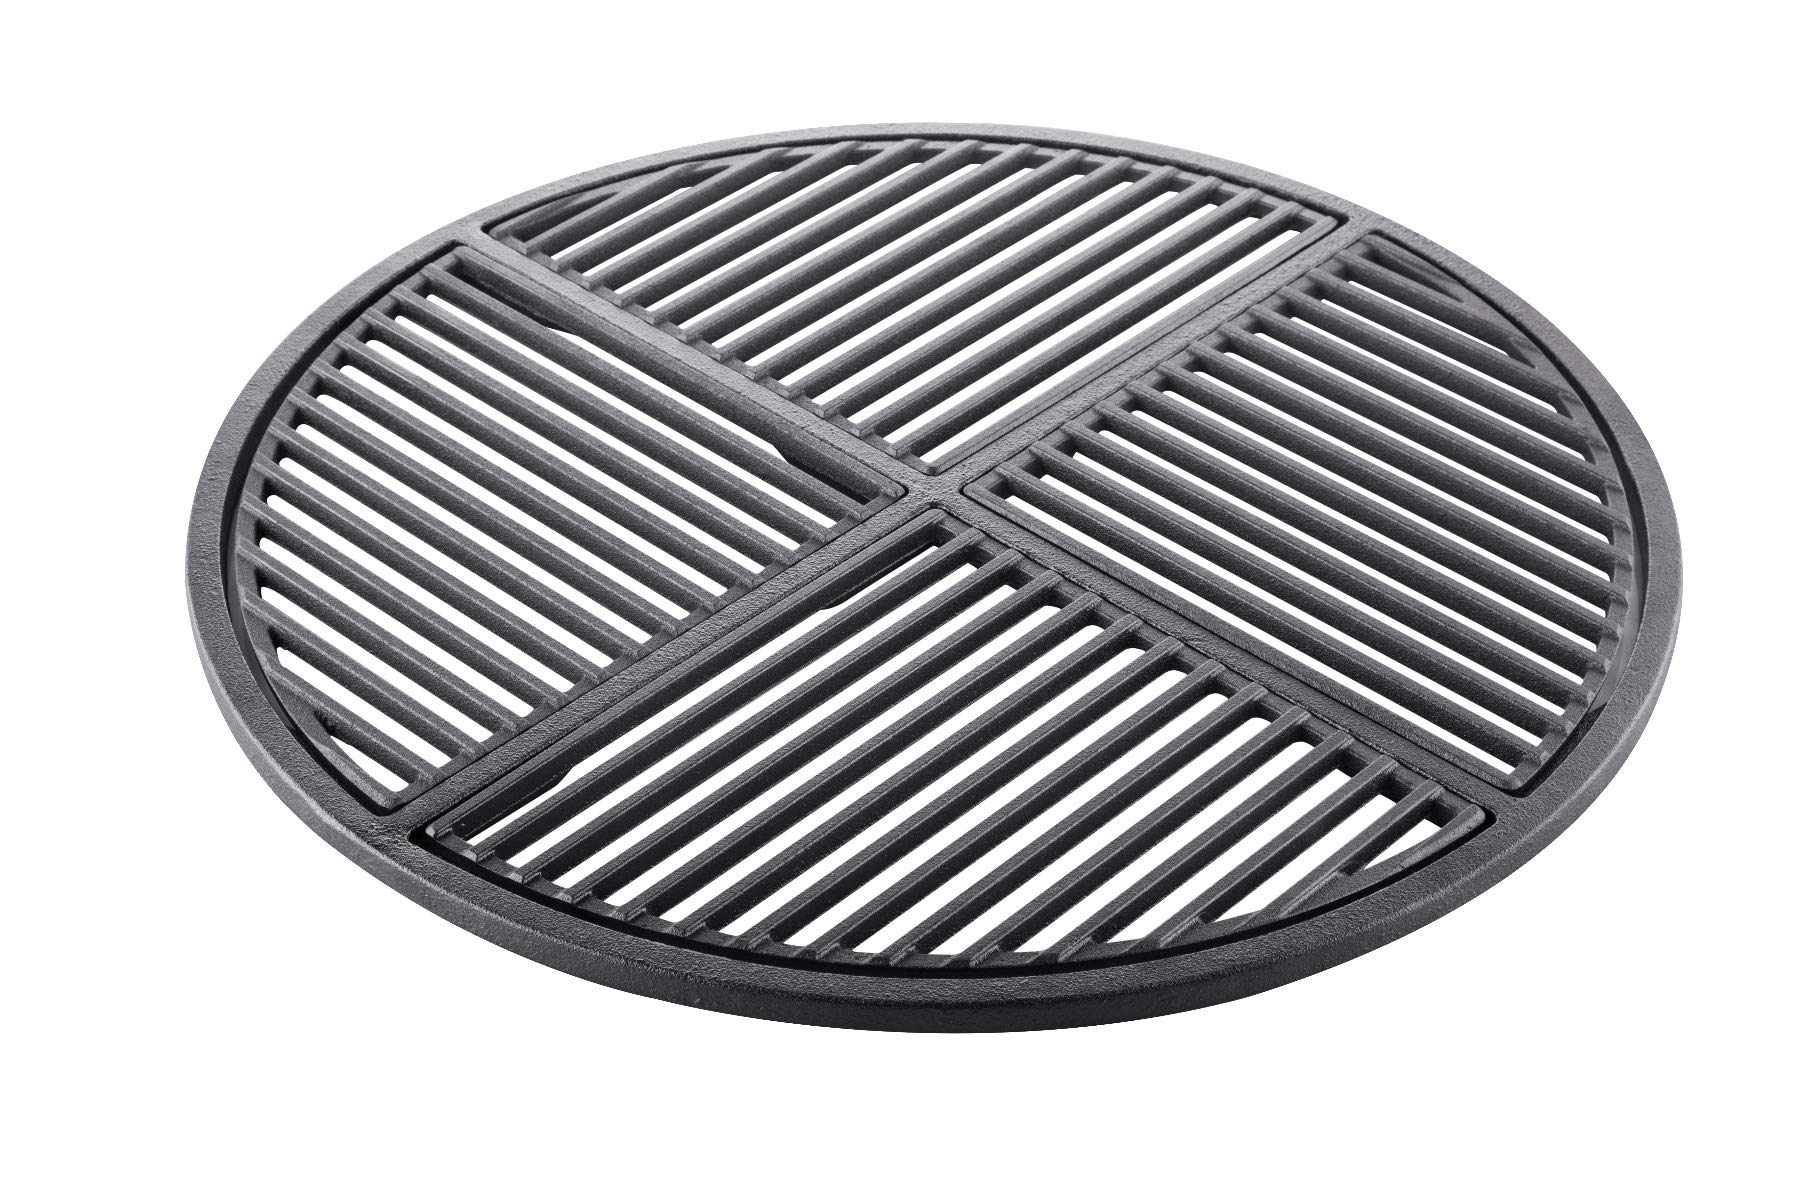 Cast Iron Grate, Pre Seasoned, Non Stick Cooking Surface, Modular  Fits 22.5'' Grills